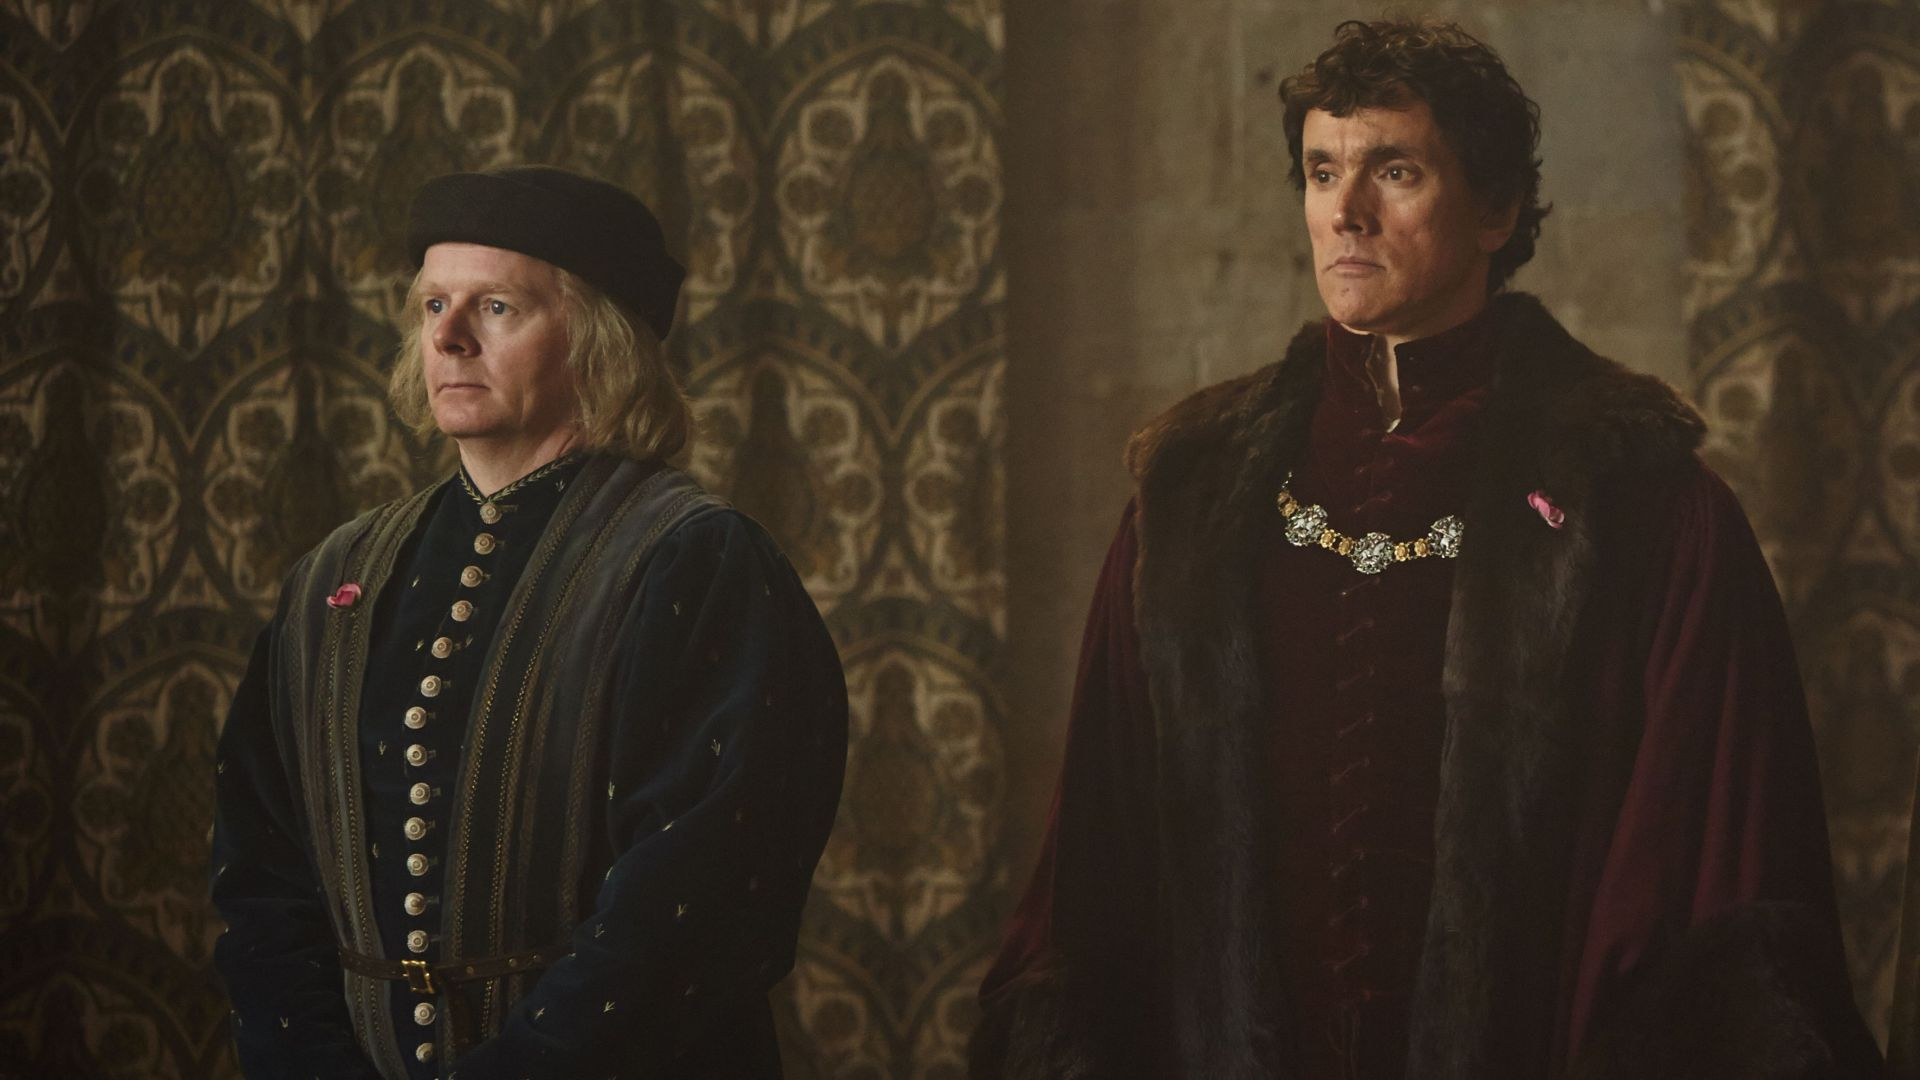 The Hollow Crown: The Wars of the Roses HENRY VI